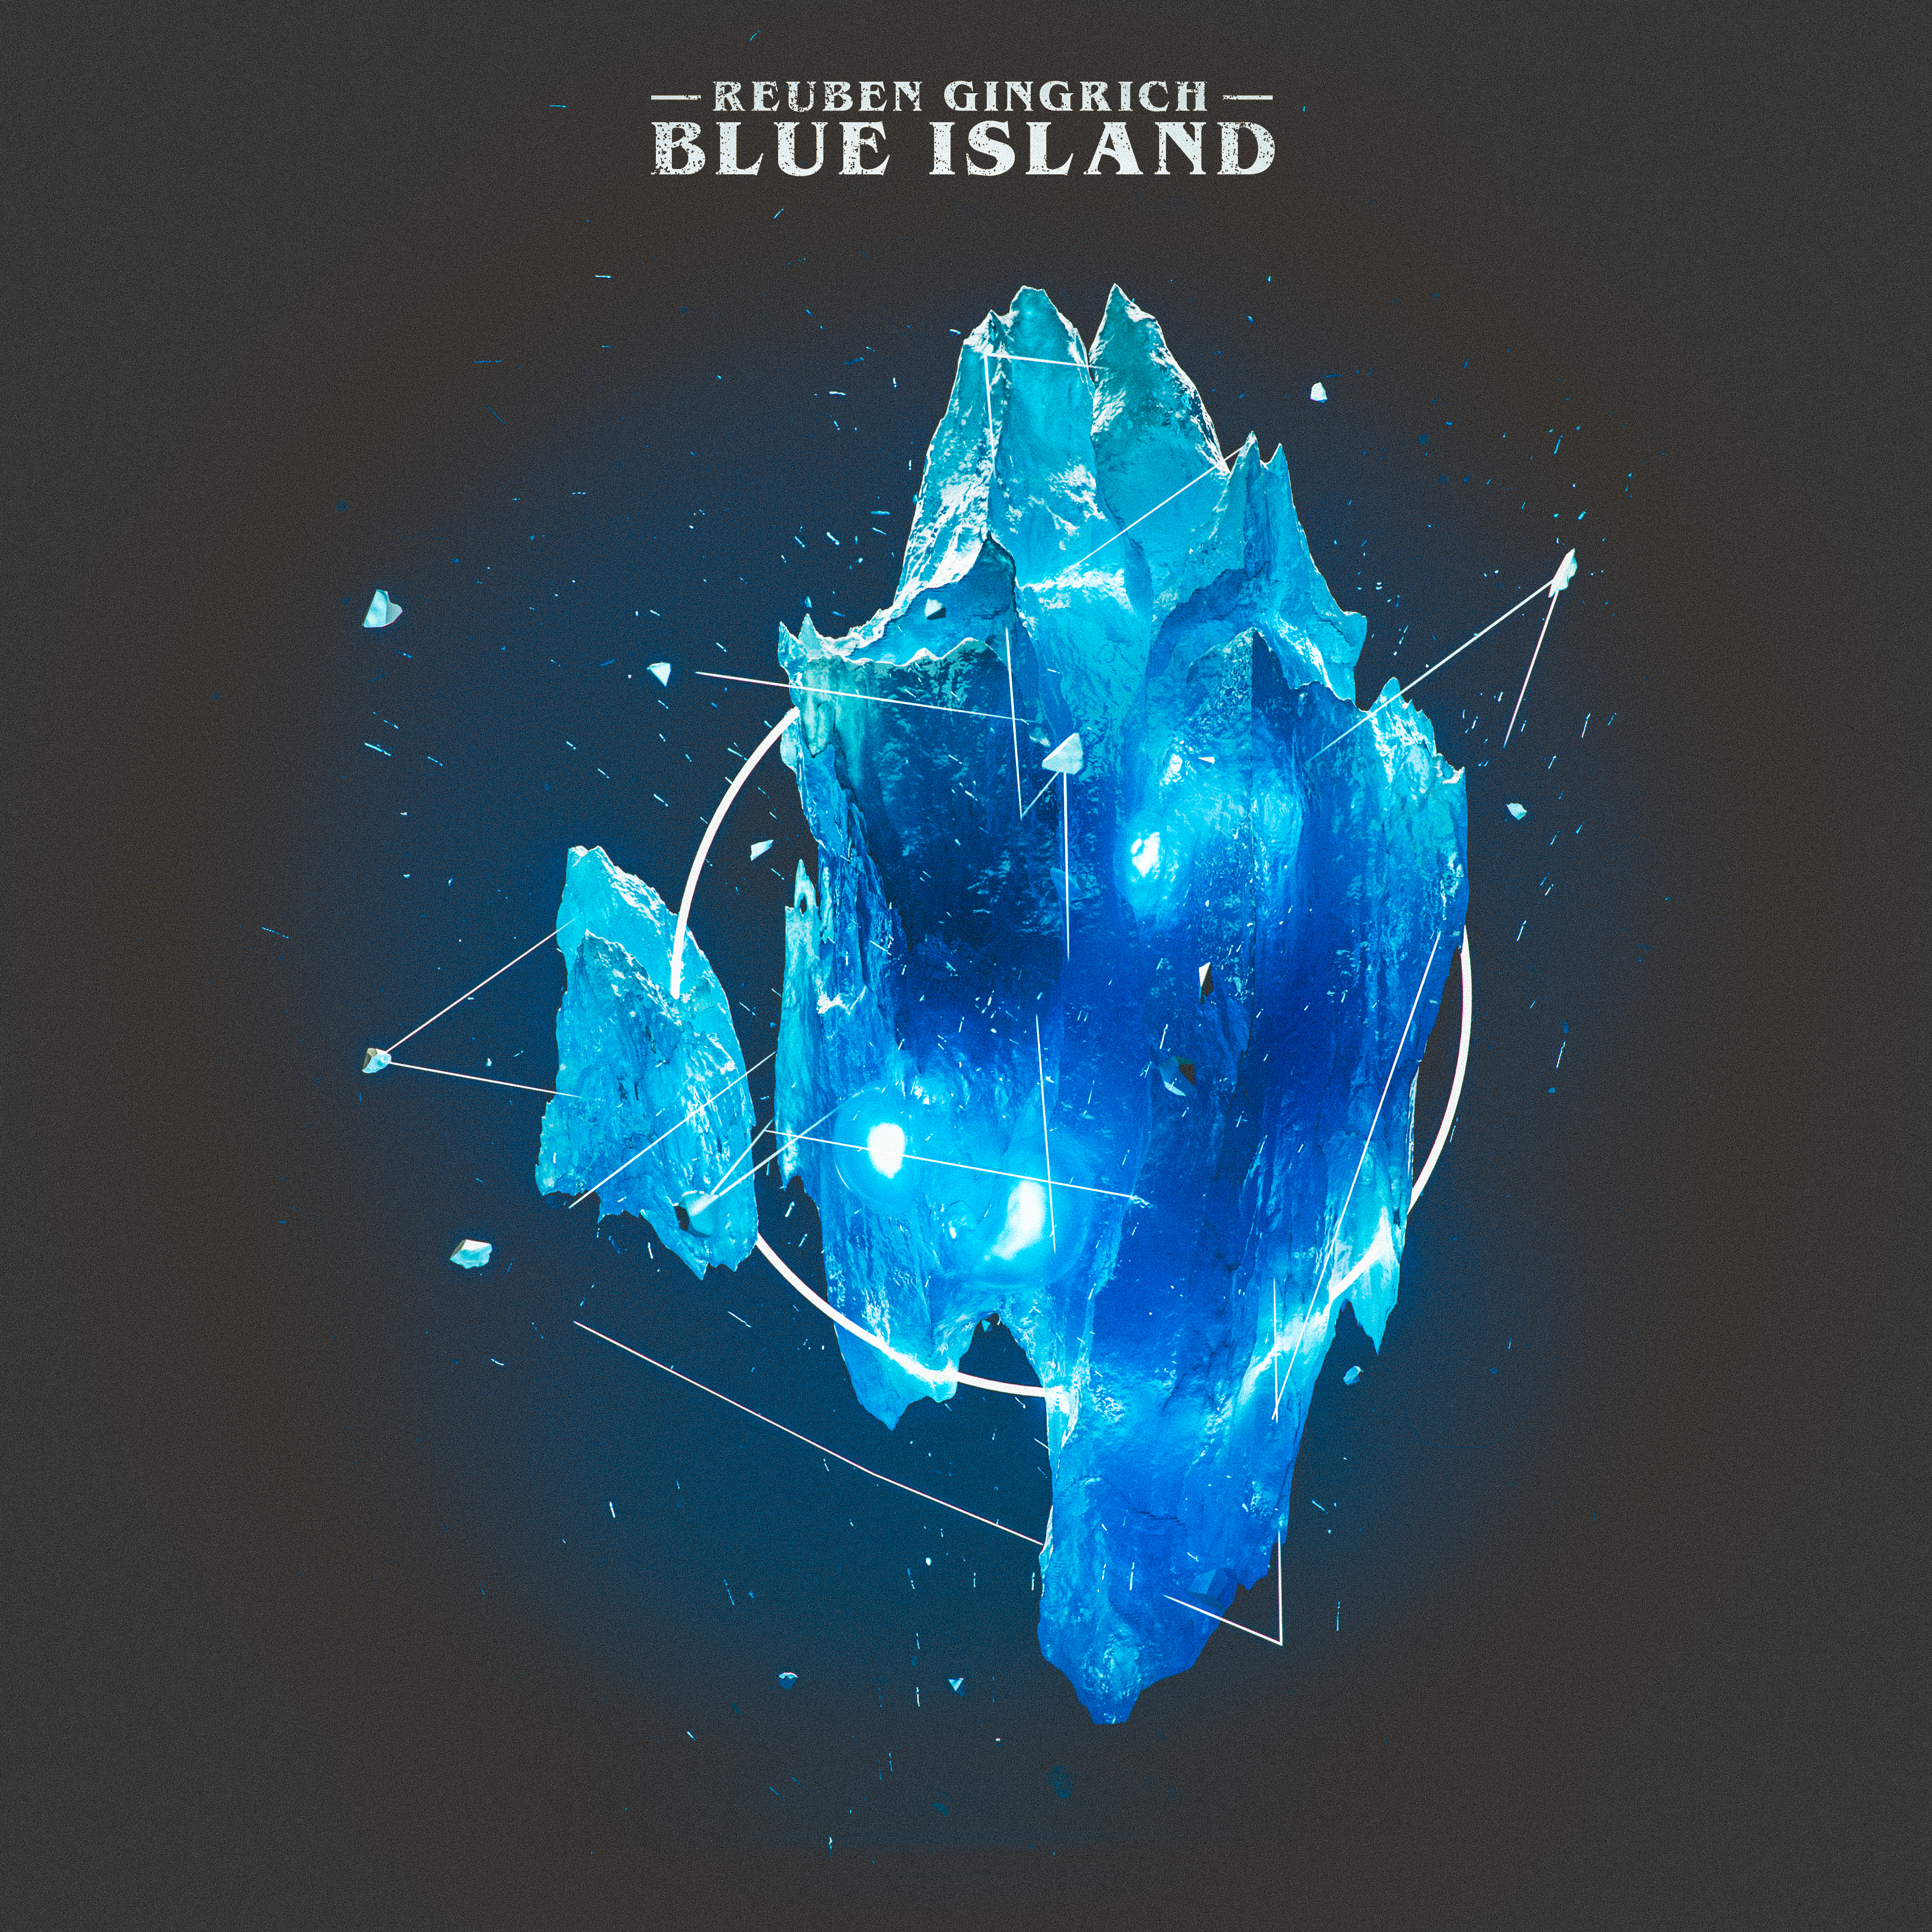 Blue Island Front Cover 4K